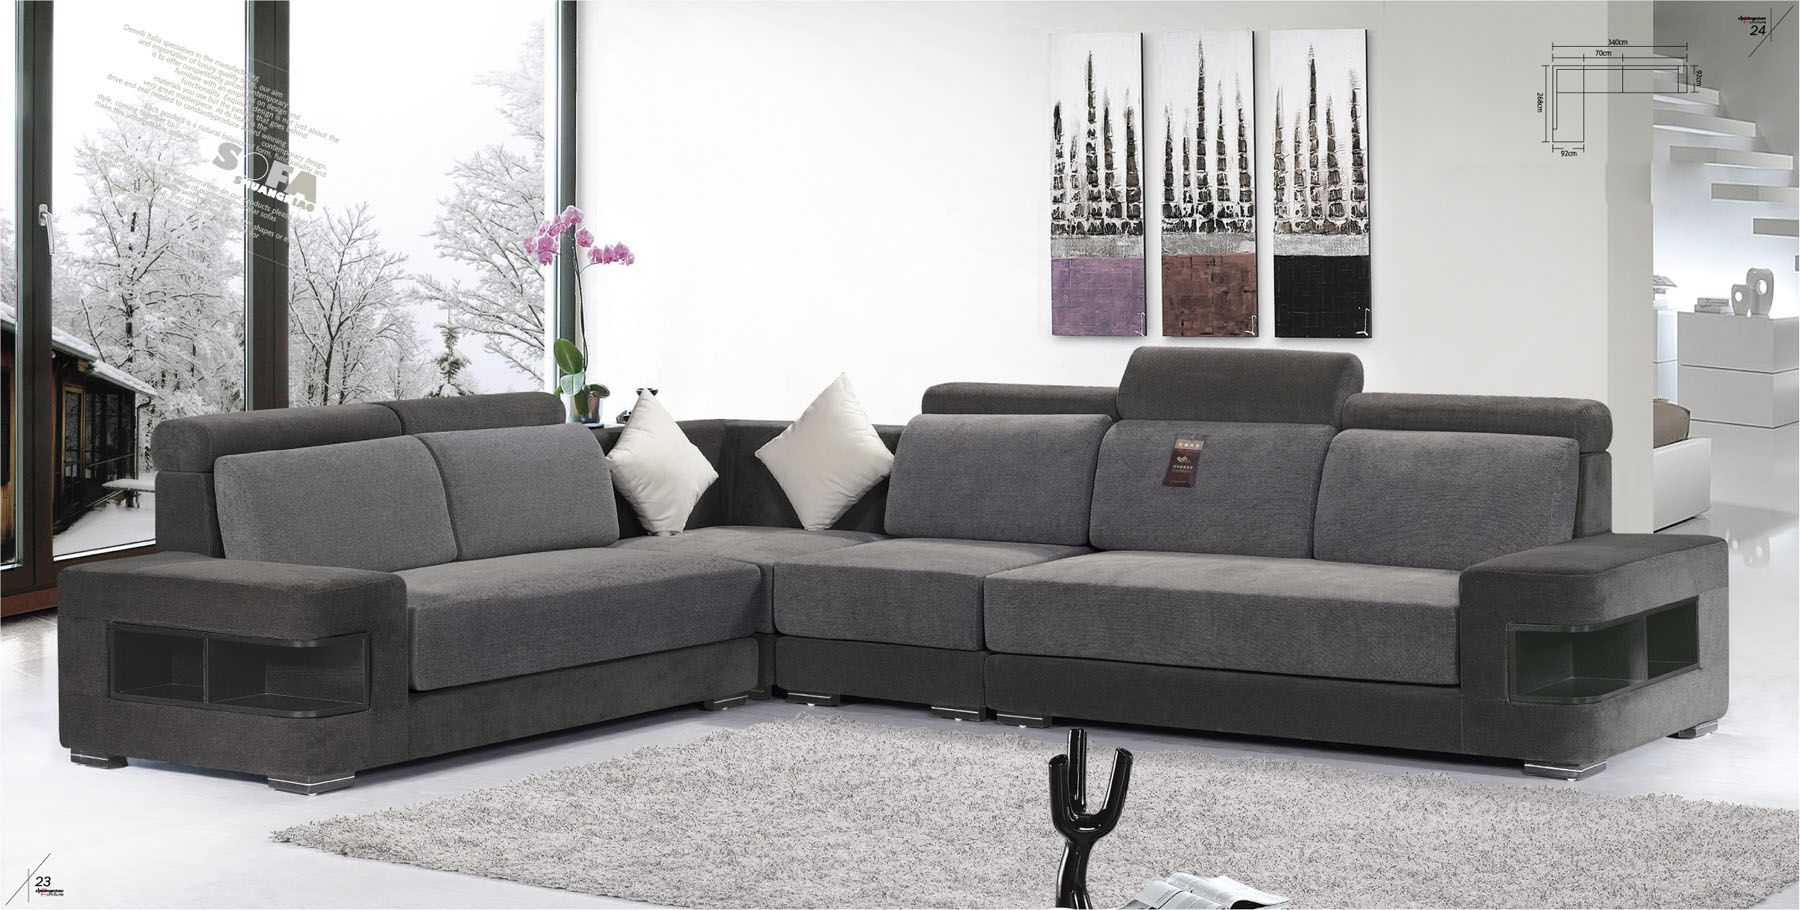 Sofa On Online Modern L Shaped Sofa And Living Room L Shaped Sofa Sets Buy Fabric